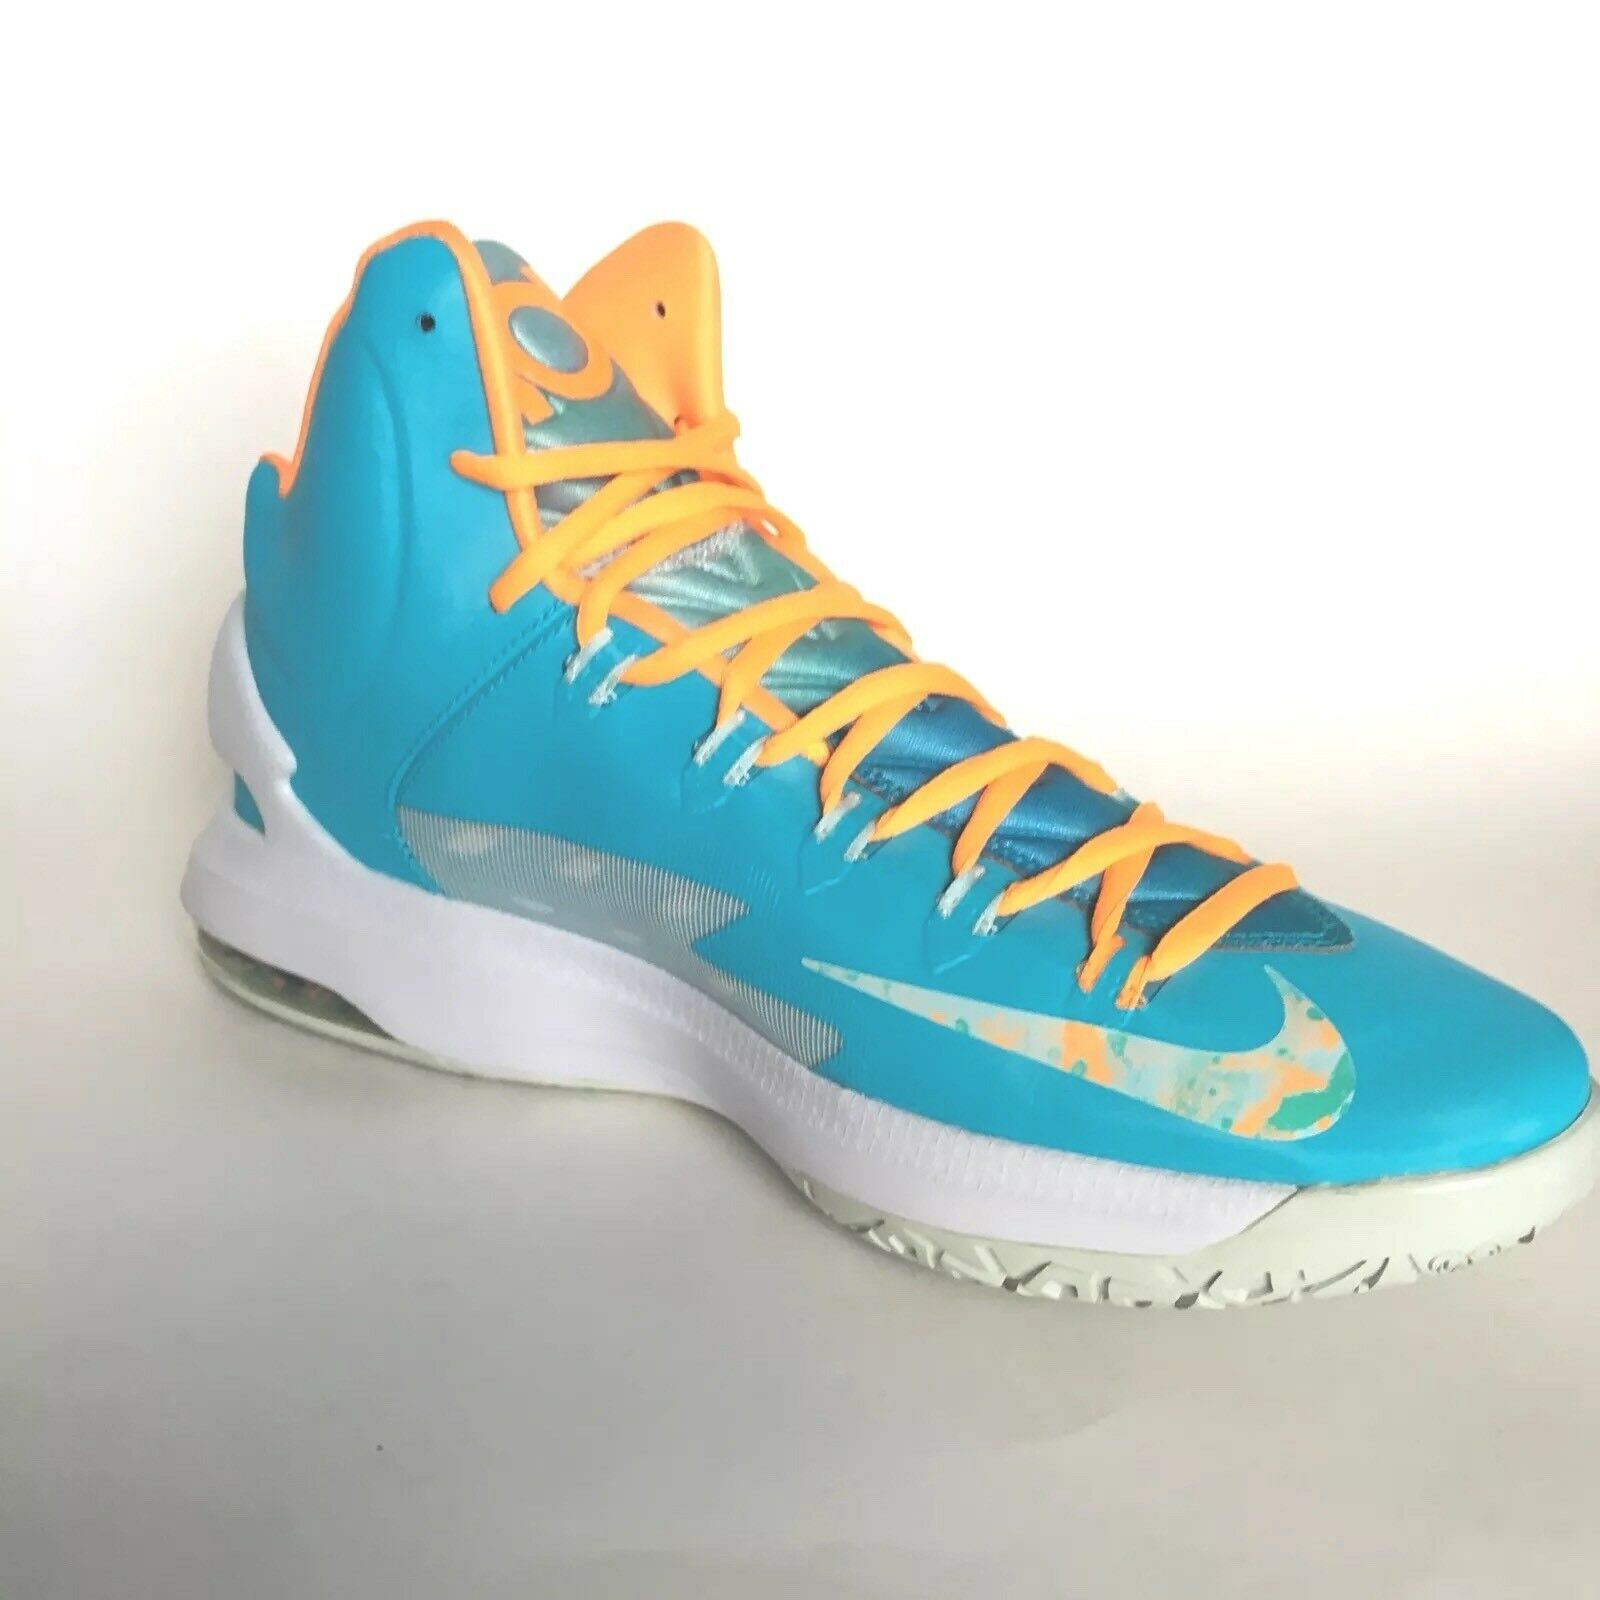 Nike Kevin Durant Easter Edition Sneakers Size 13 Eur 47.5 Deadstock Rare Kicks